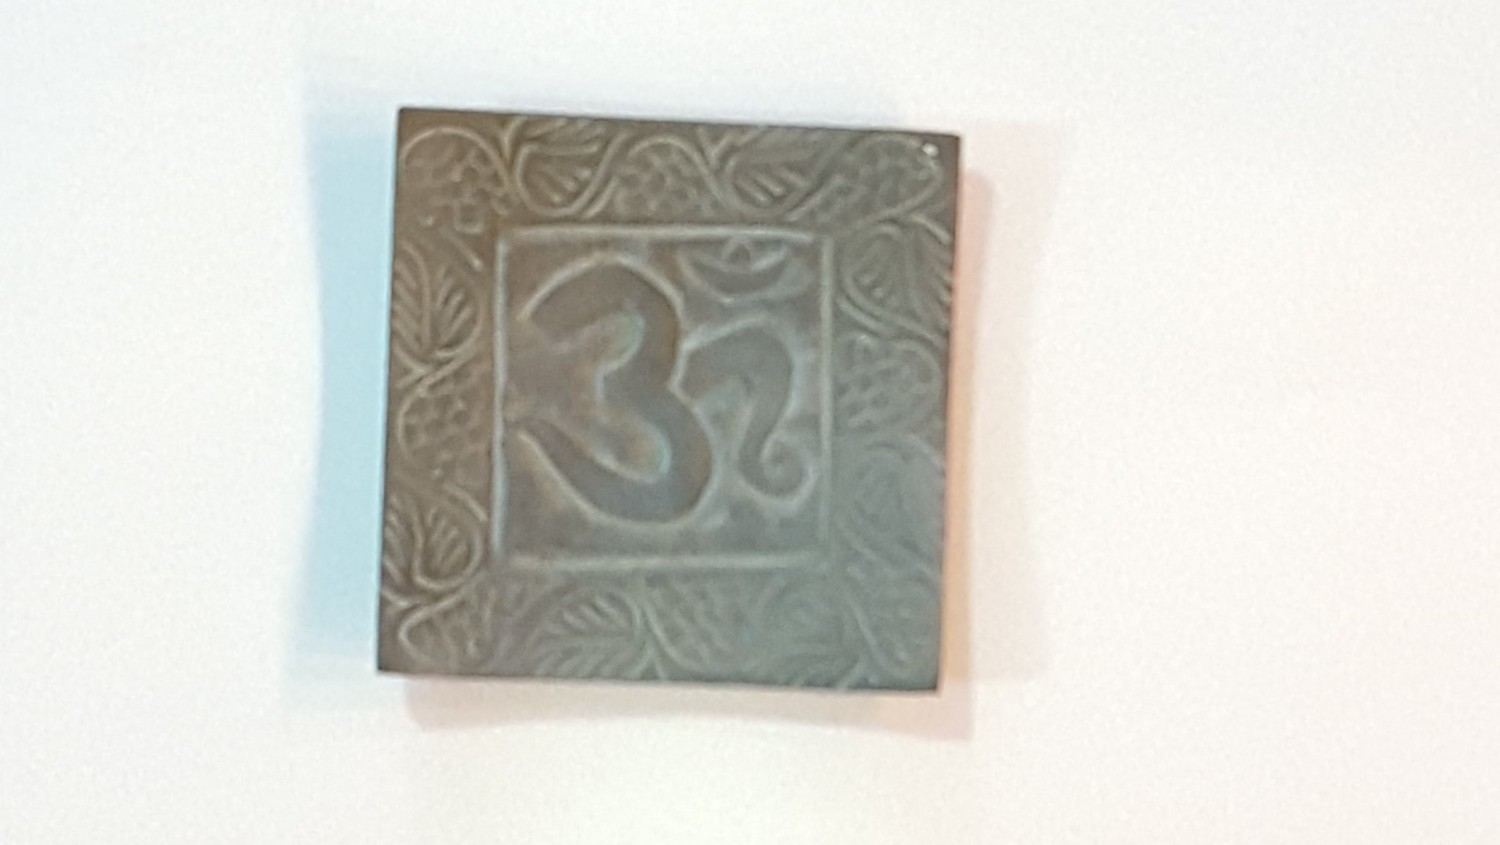 Square Indian Design Incense Holder